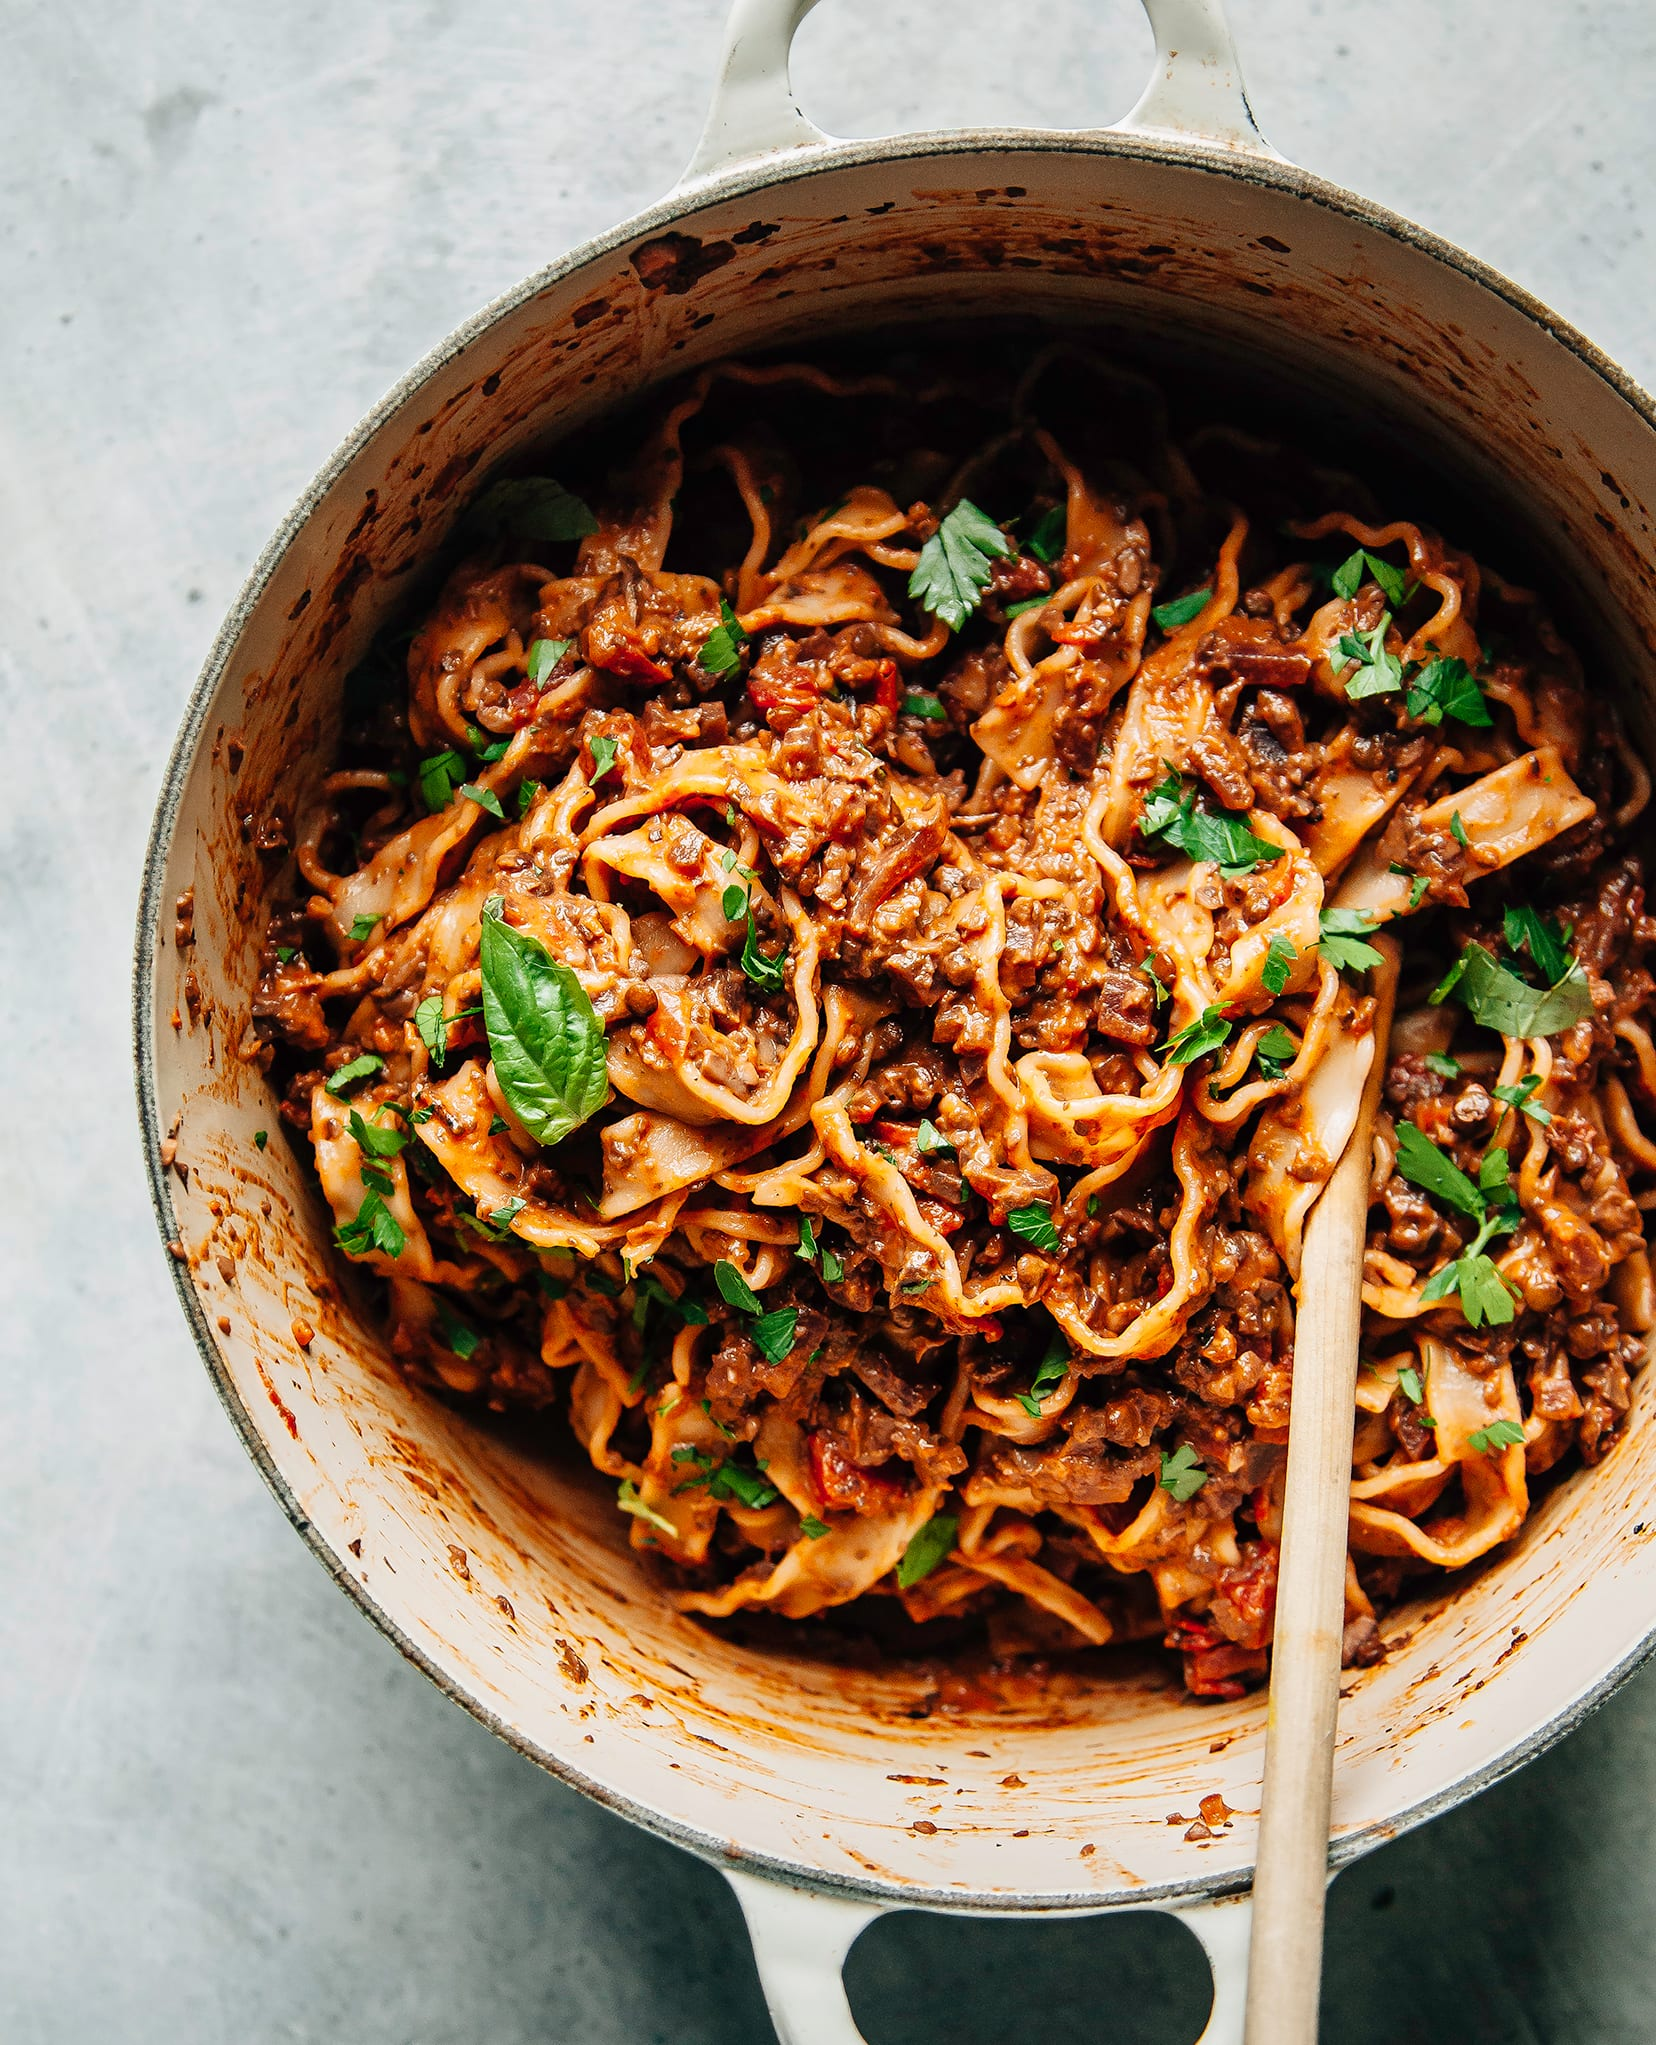 An overhead shot of a deep red, meaty vegan bolognese pasta in a pot.